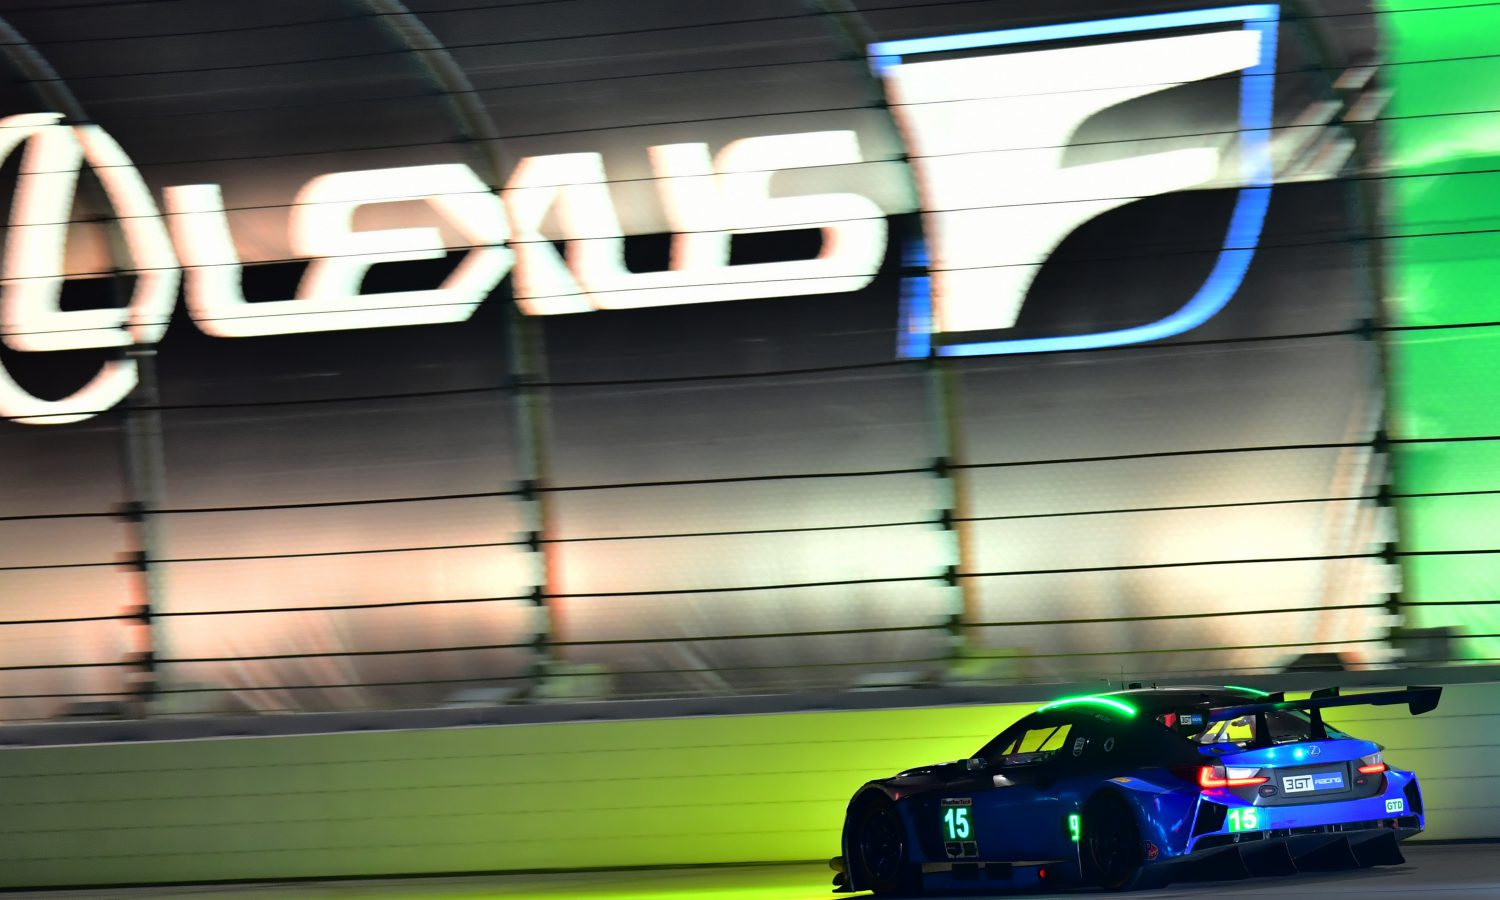 Lexus Opens Season with Top-10 Result at Rolex 24 at Daytona